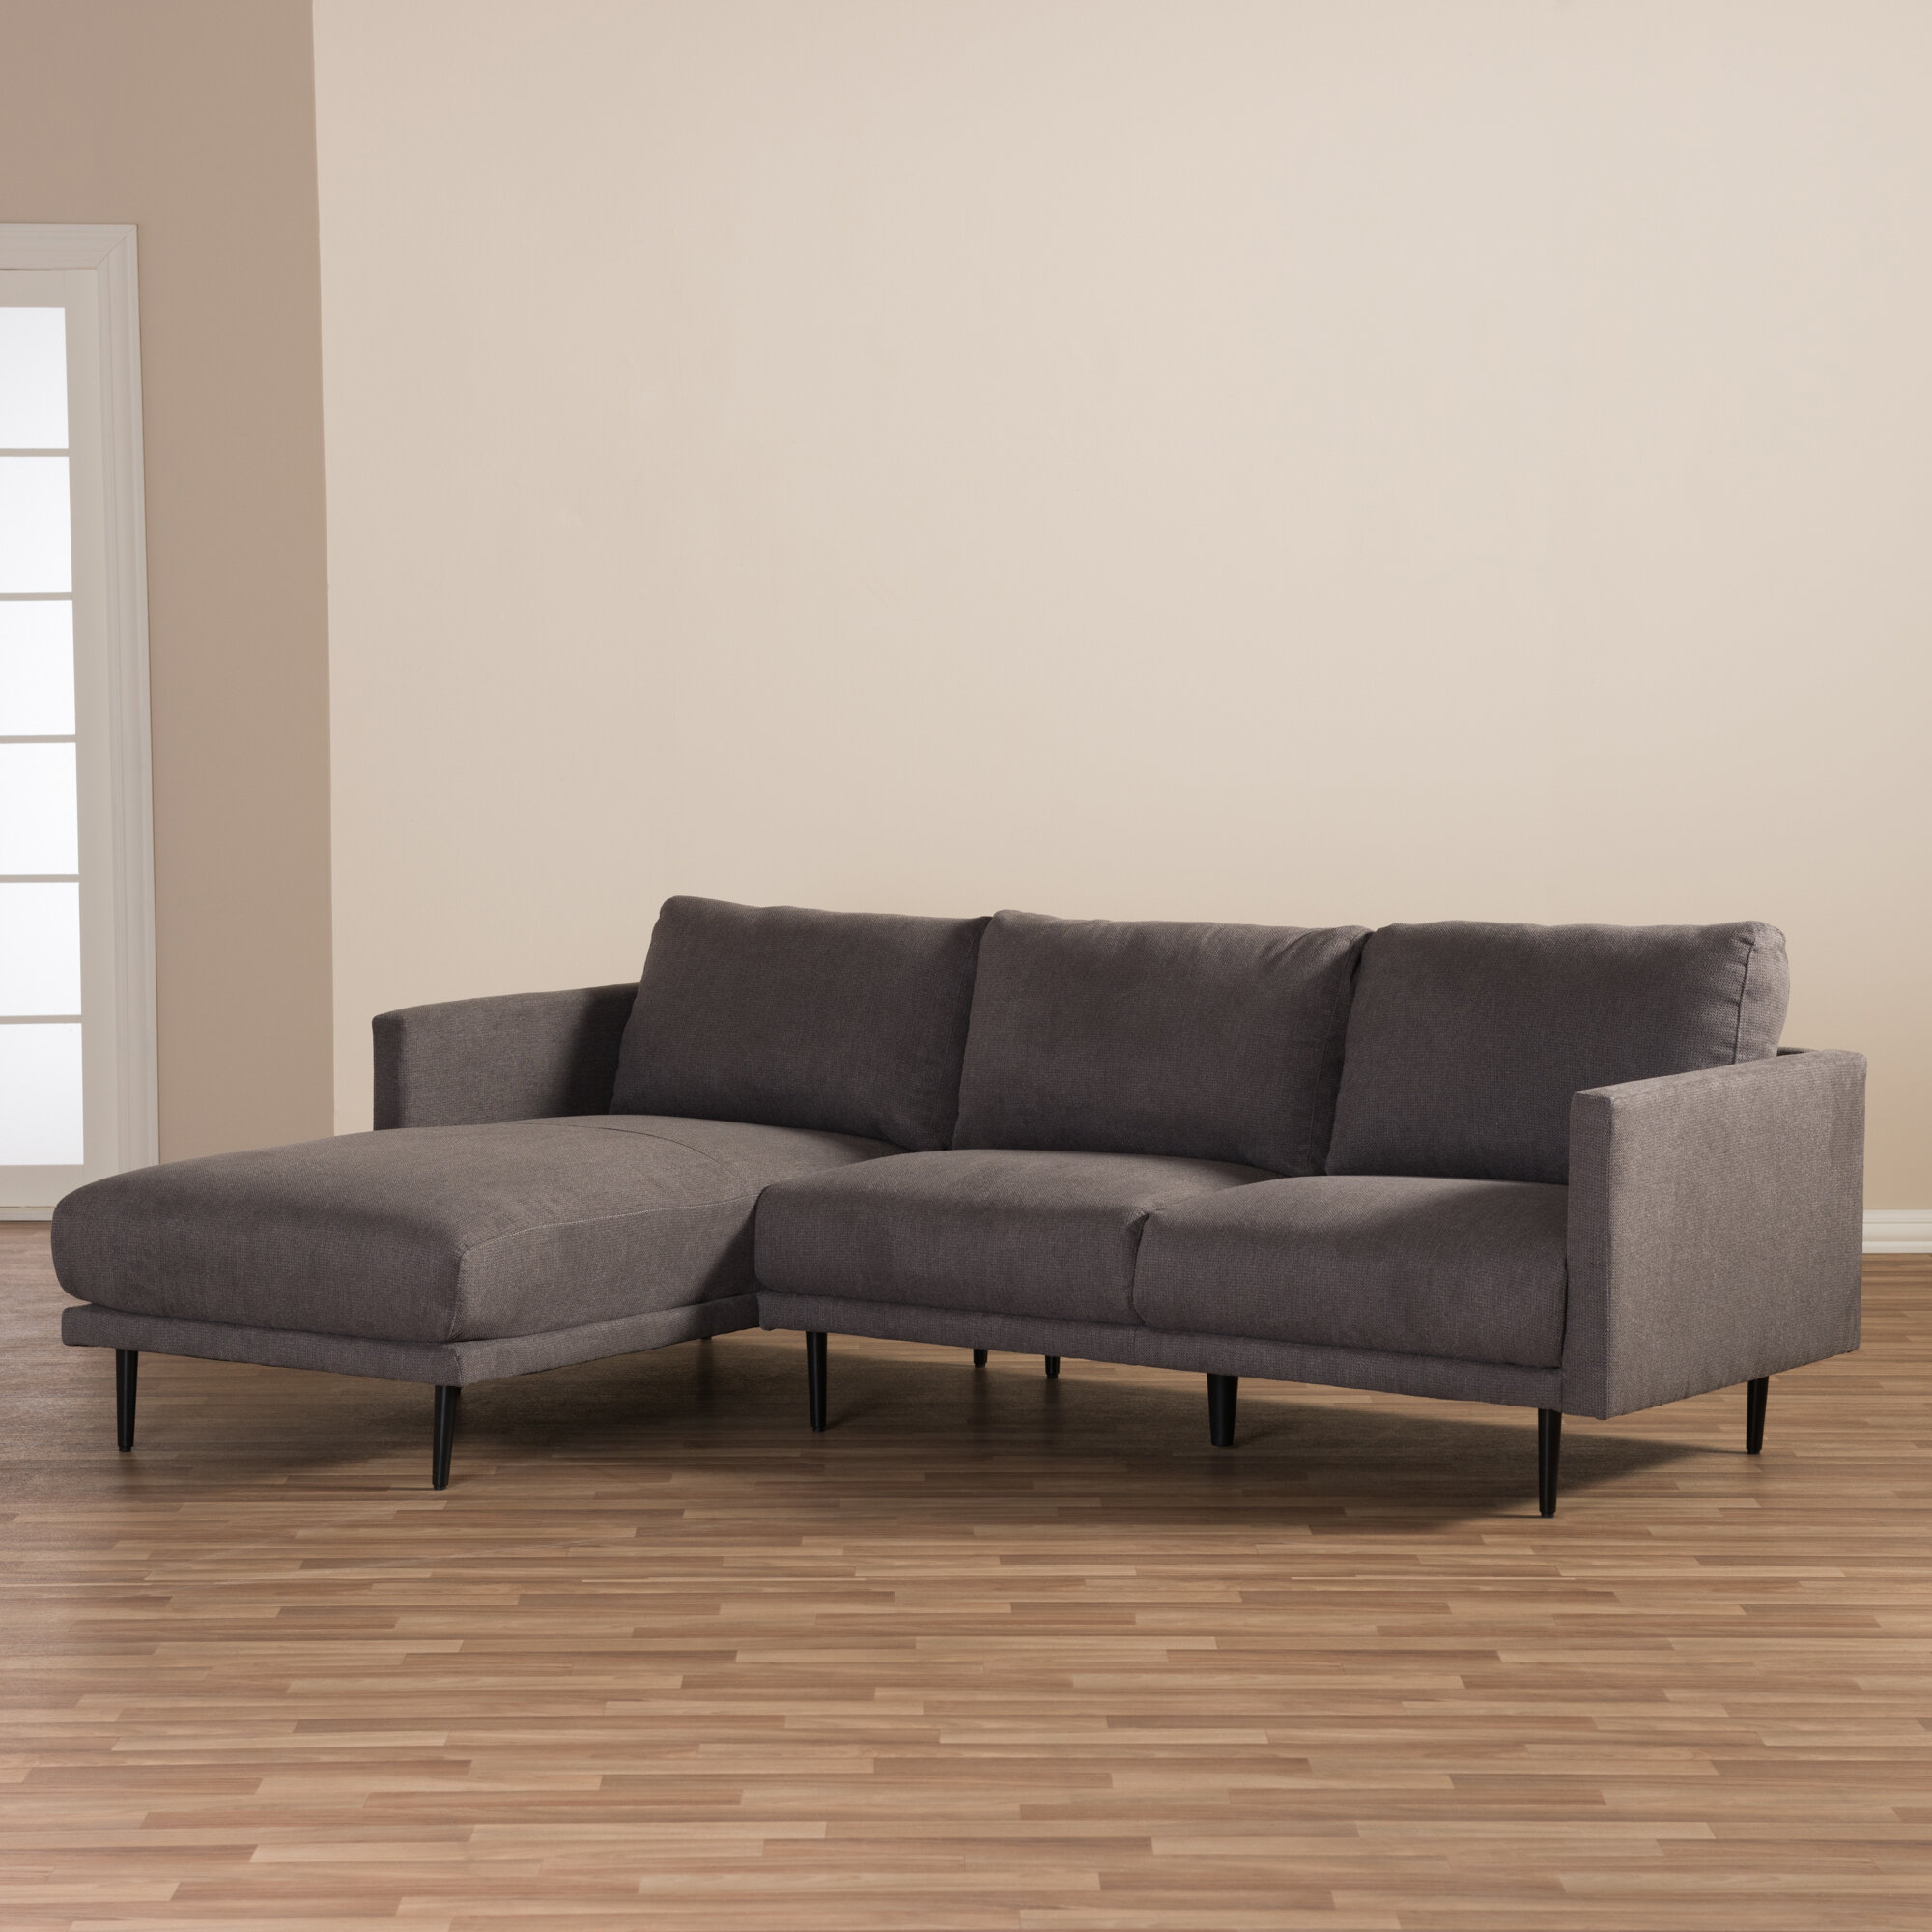 Remarkable Adelaide Left Hand Facing Sectional Caraccident5 Cool Chair Designs And Ideas Caraccident5Info